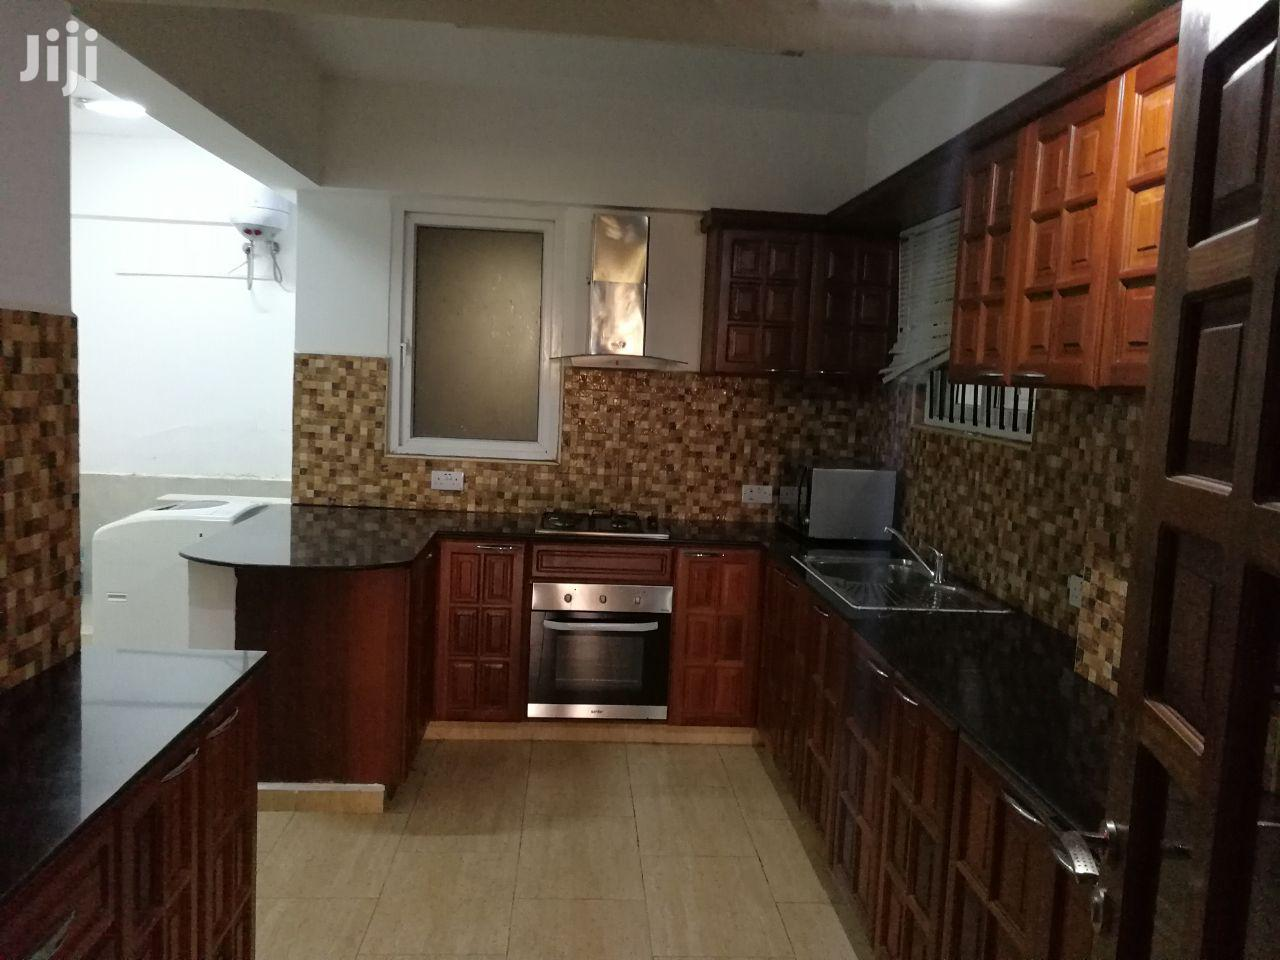 House Available for Lease at Msasani Barbeque Village | Houses & Apartments For Rent for sale in Kinondoni, Dar es Salaam, Tanzania